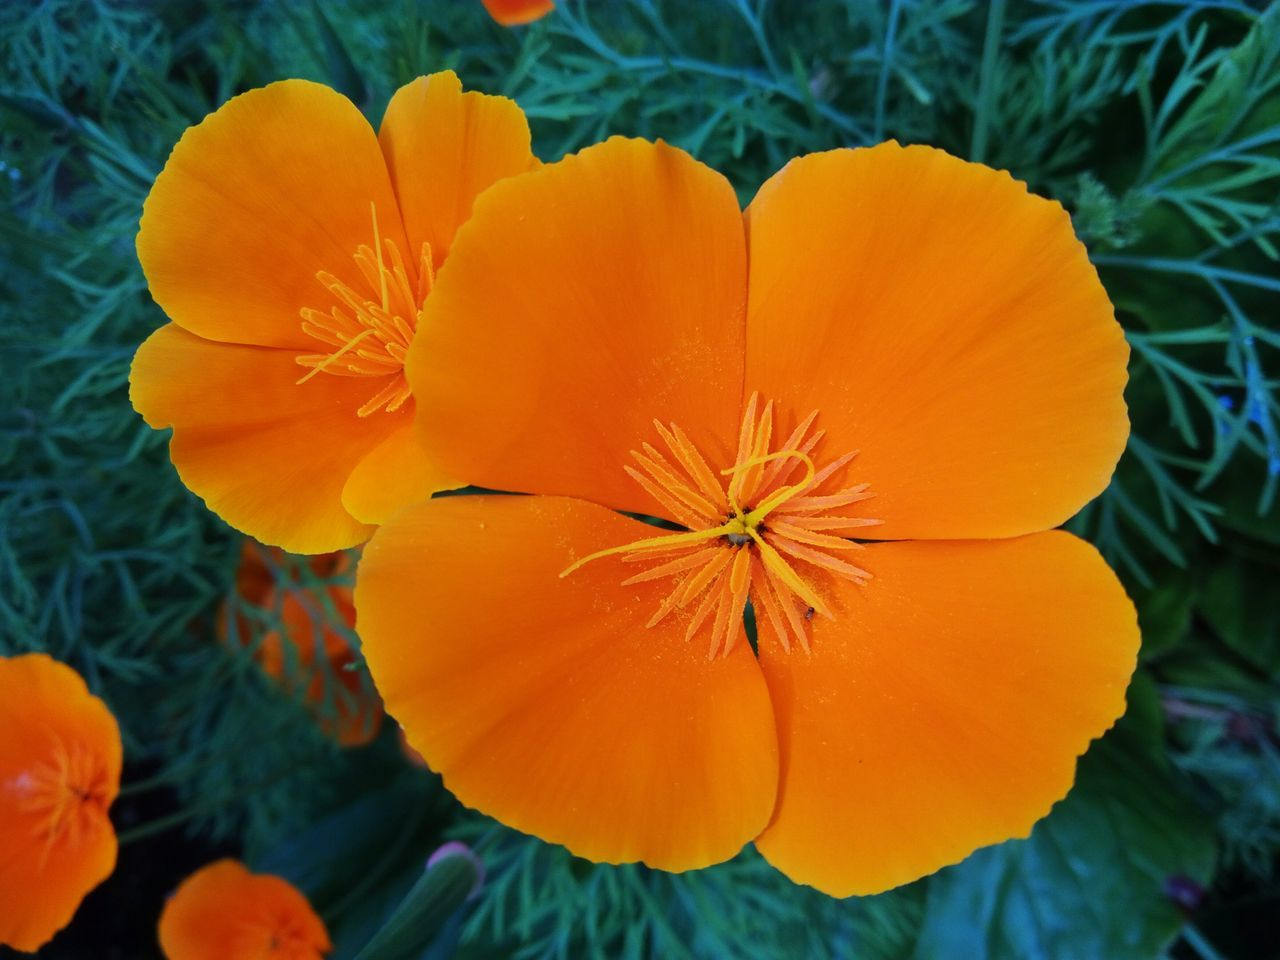 Catching the sun from these California poppies. California Poppies California Poppy Orange Flowers Orange Petals Orange In The Garden Garden Garden Flowers Garden Flowers In Bloom Bloom Blooming